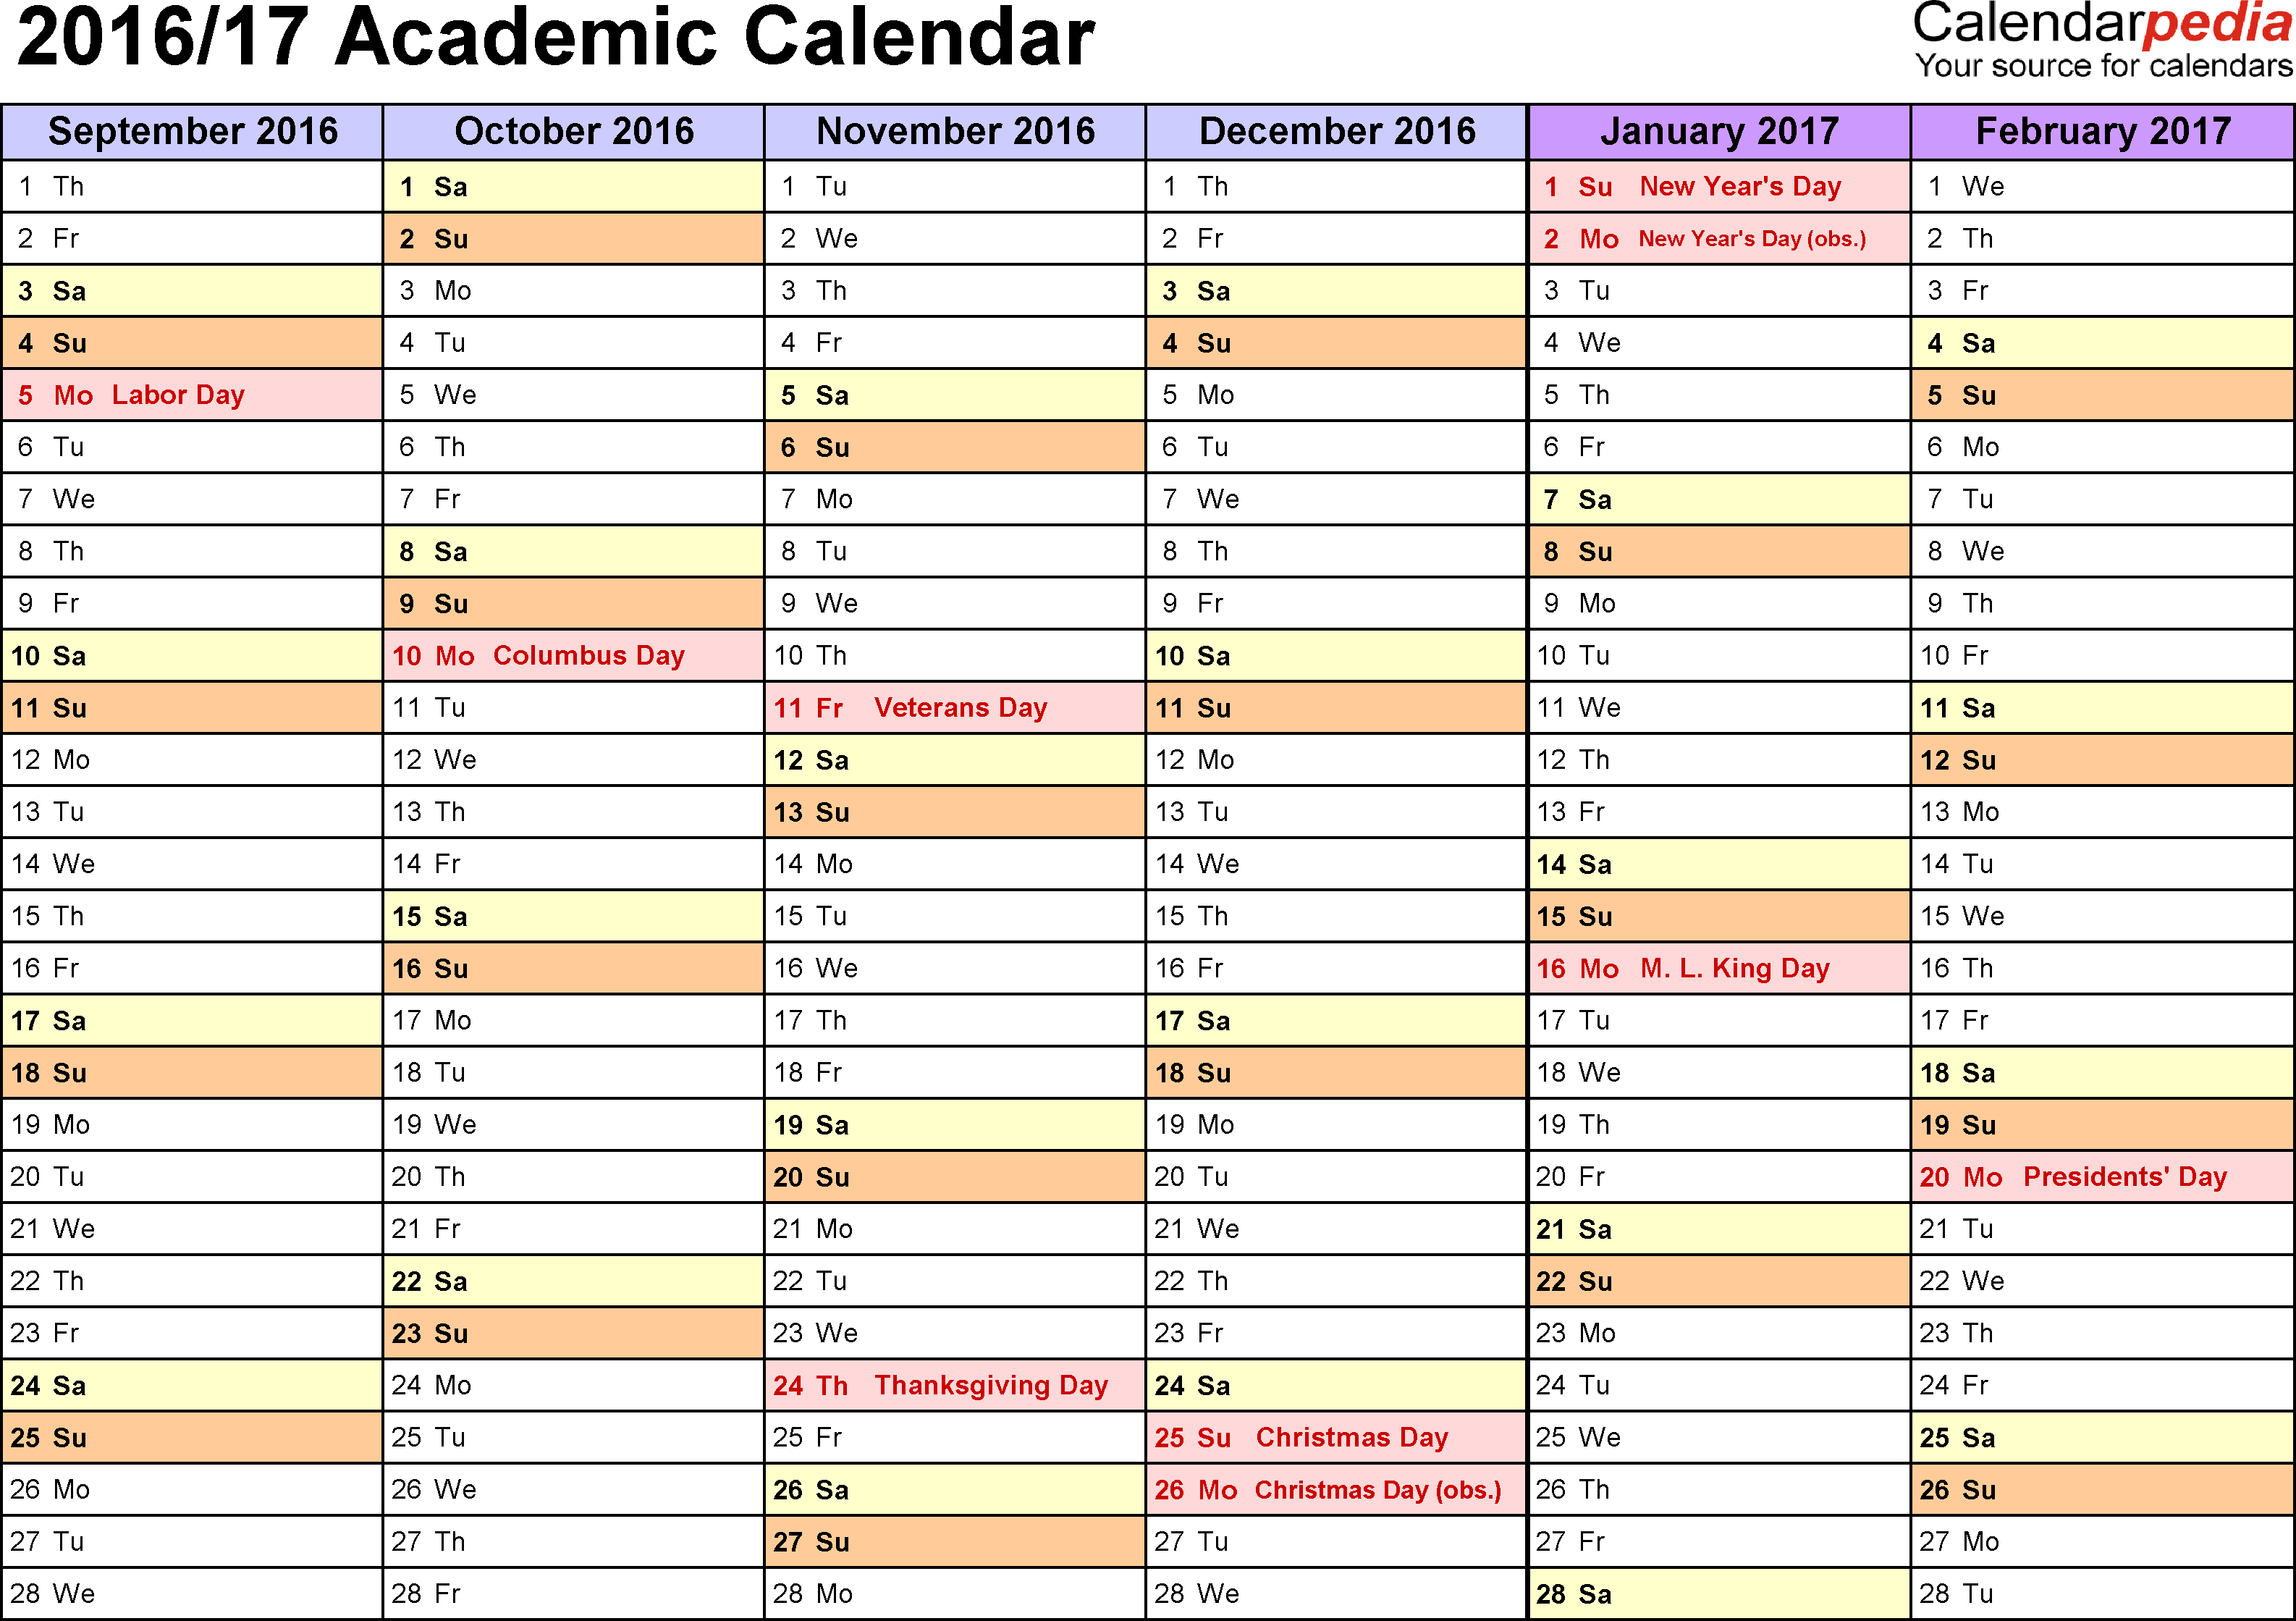 Download Template 2: Academic calendar 2016/17 for Microsoft Excel (.xlsx file), landscape, 2 pages, half a year per page